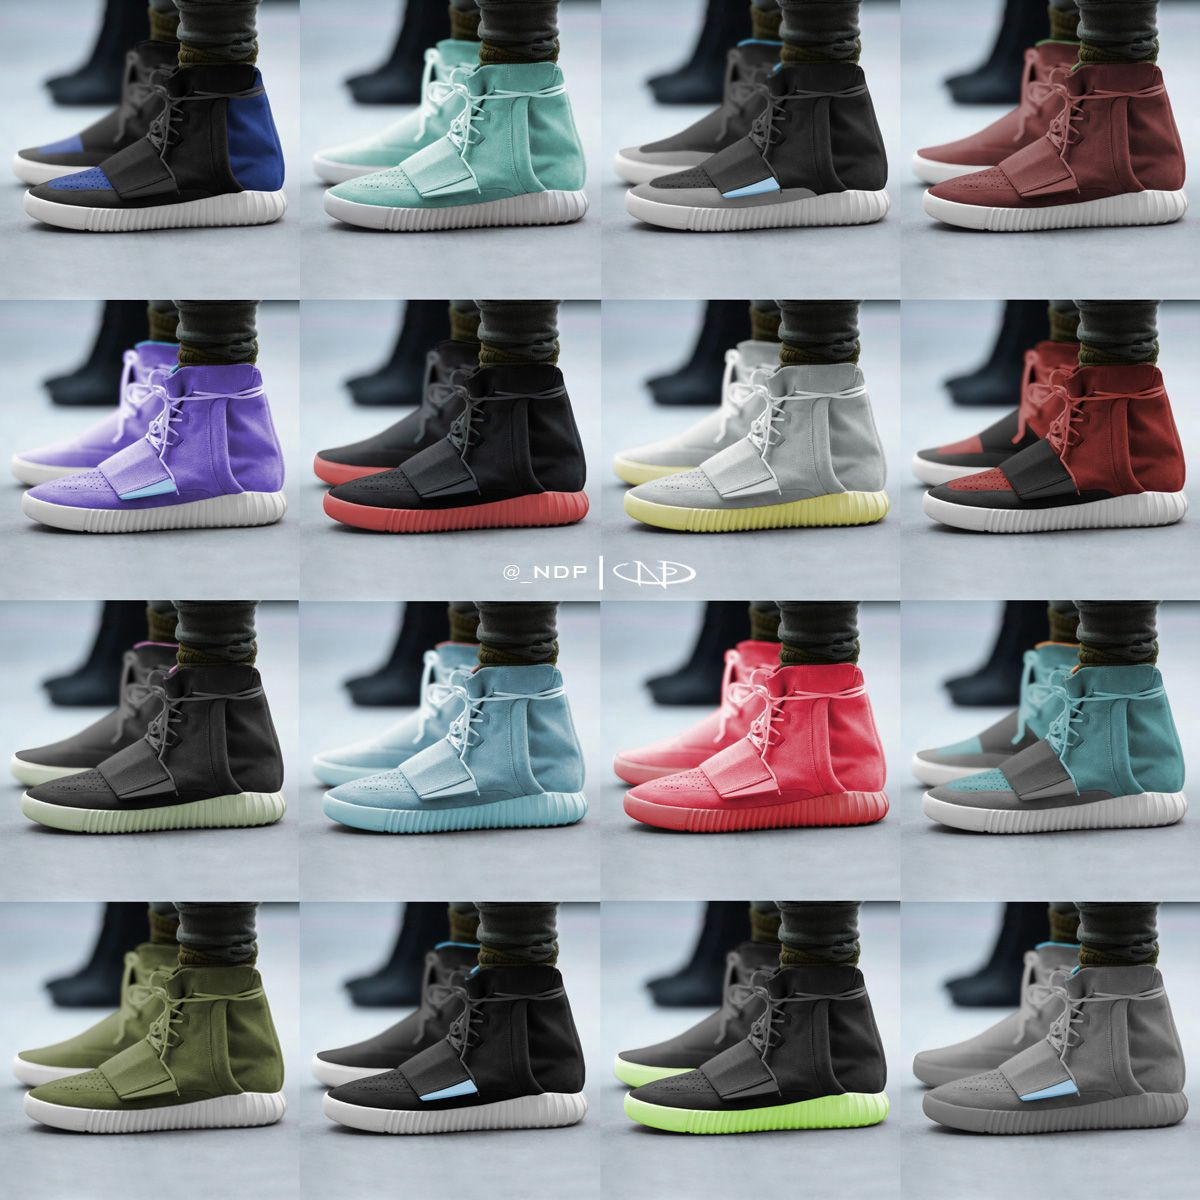 Adidas Yeezy Boost Colours